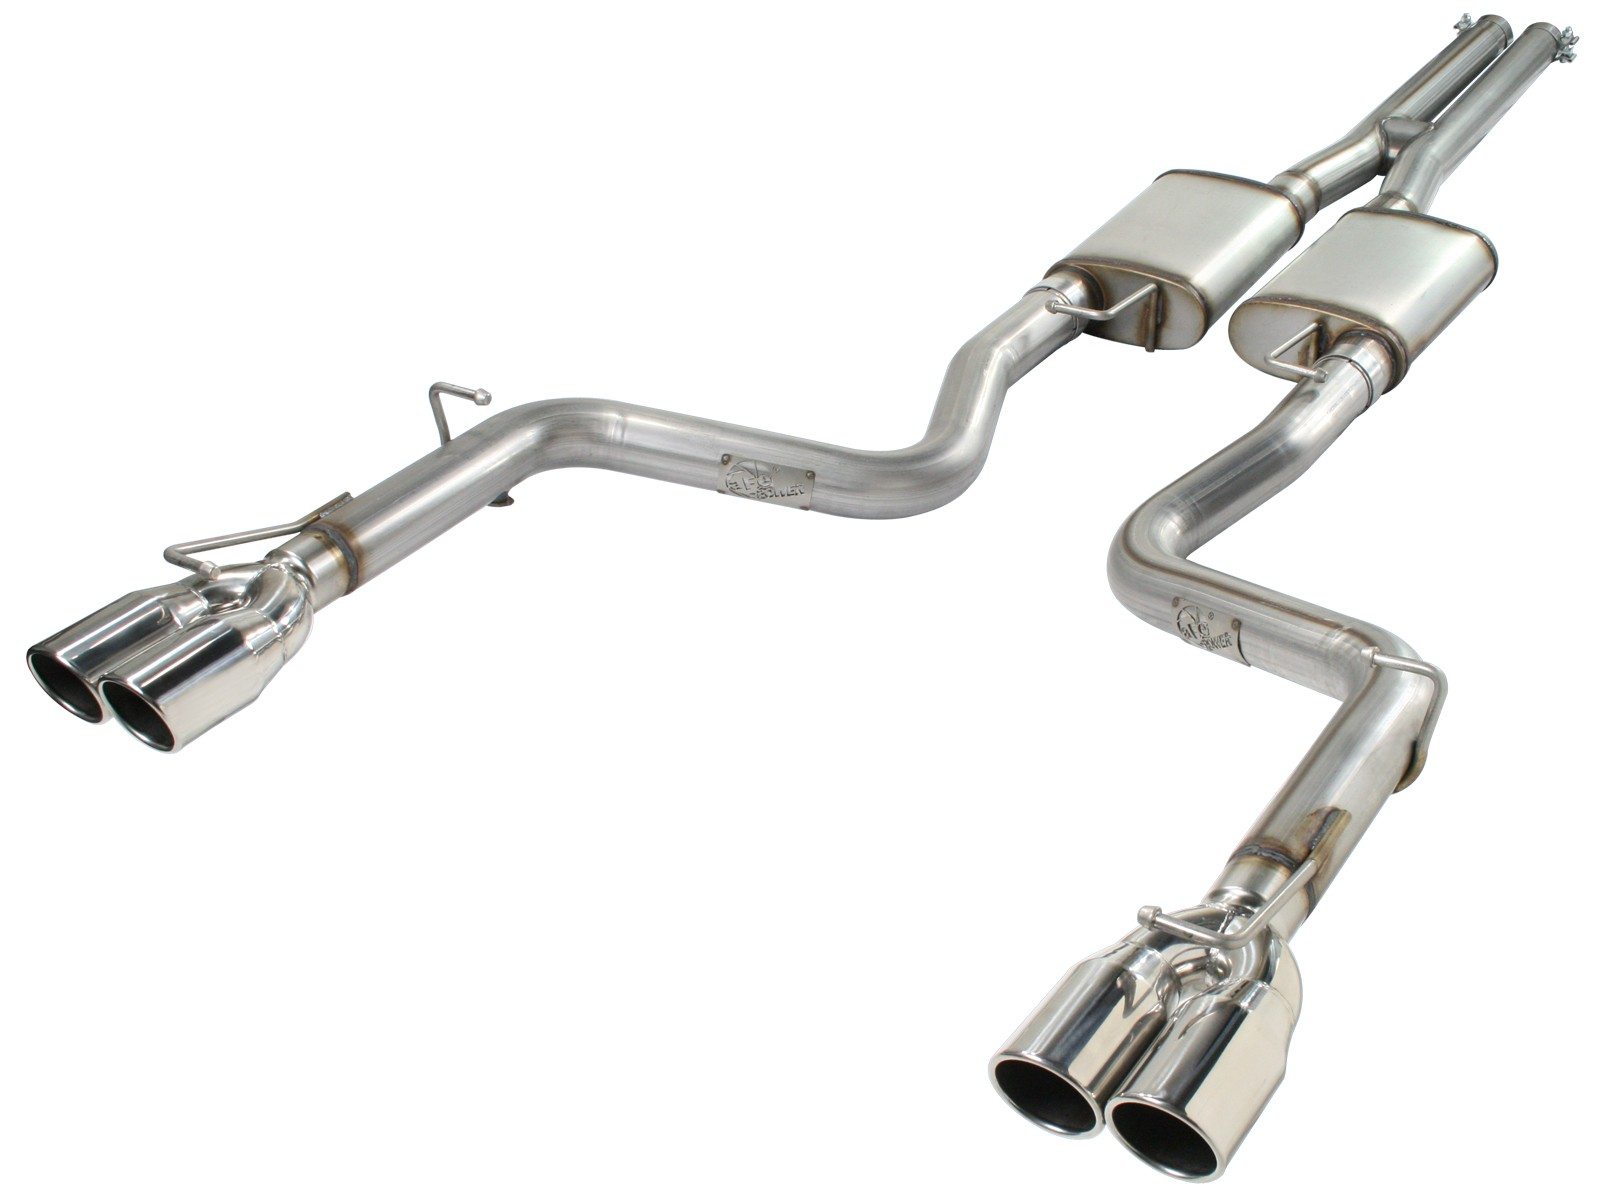 "aFe POWER 49-42017 MACH Force-Xp 3"" 409 Stainless Steel Cat-Back Exhaust System"